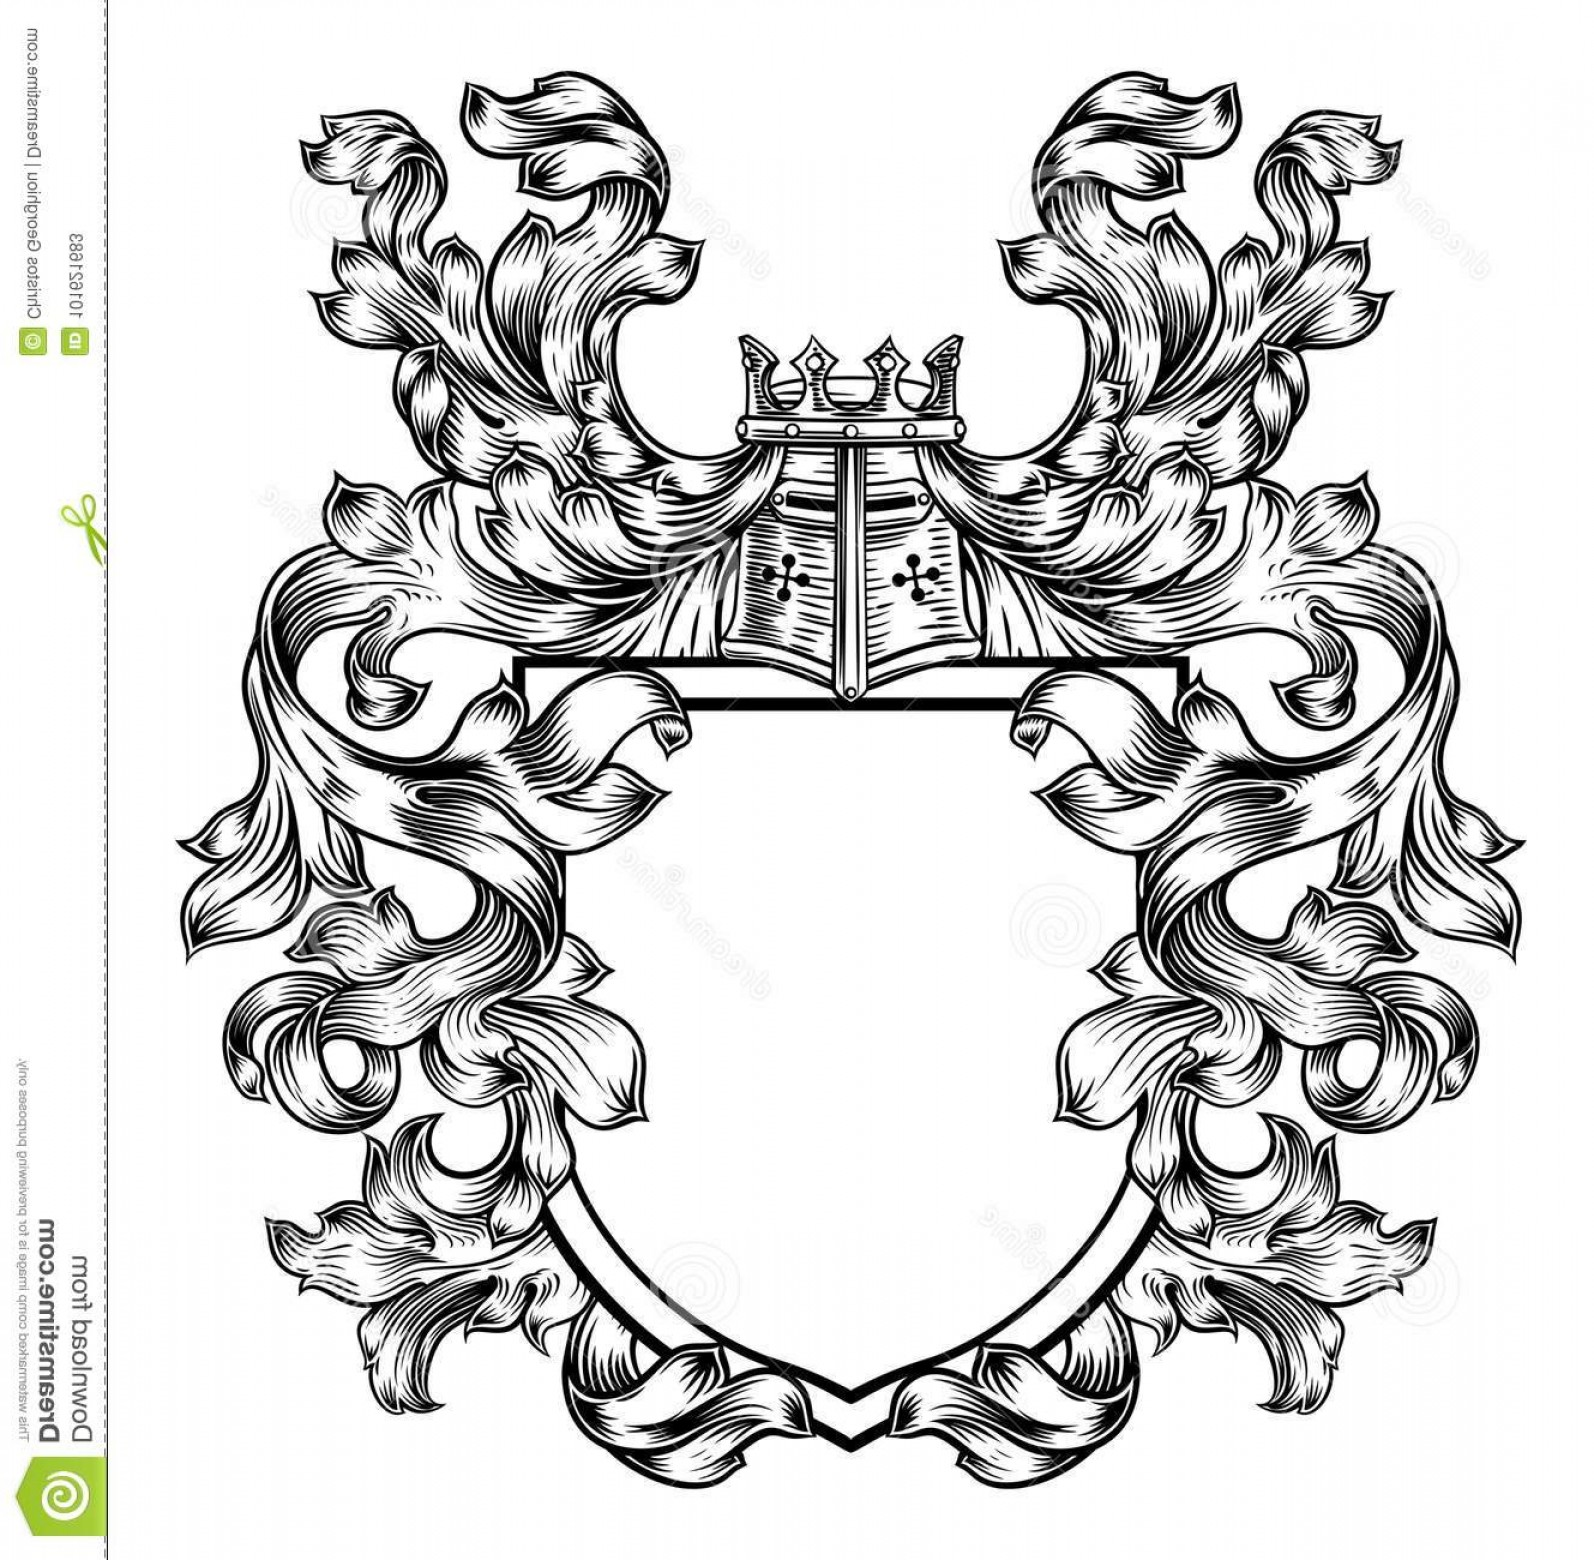 Crest And Coat Of Arms Vector Silhouette: Knight Heraldic Crest Coat Arms Shield Emblem Medieval Featuring Knights Great Helm Helmet Filigree Leaf Design Image